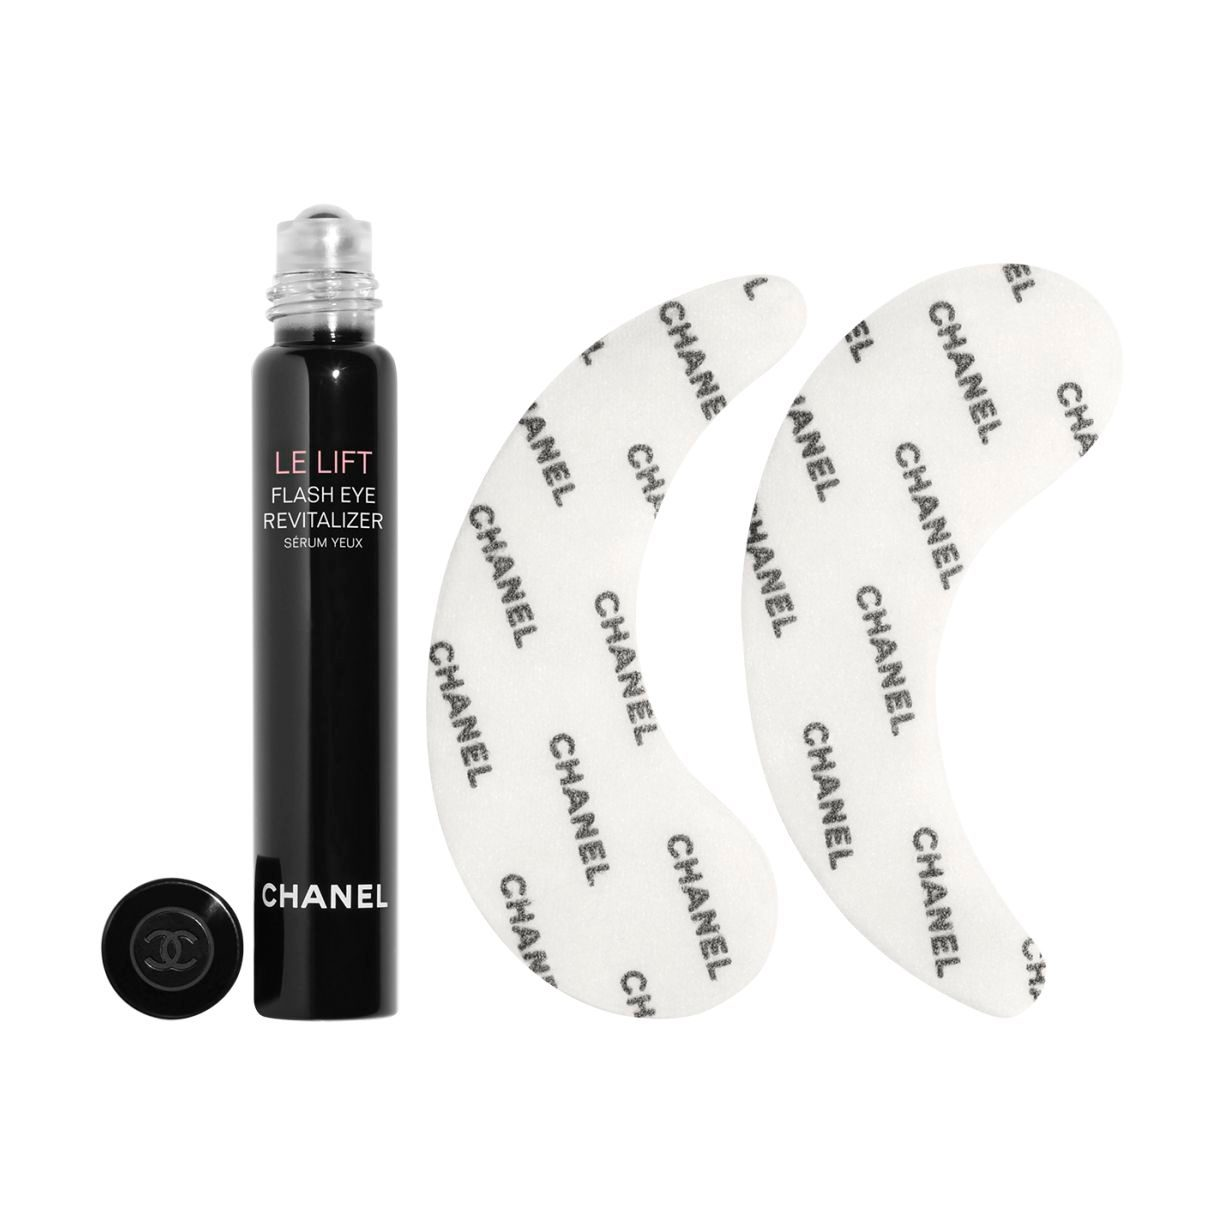 LE LIFT FIRMING - ANTI-WRINKLE FLASH EYE REVITALIZER